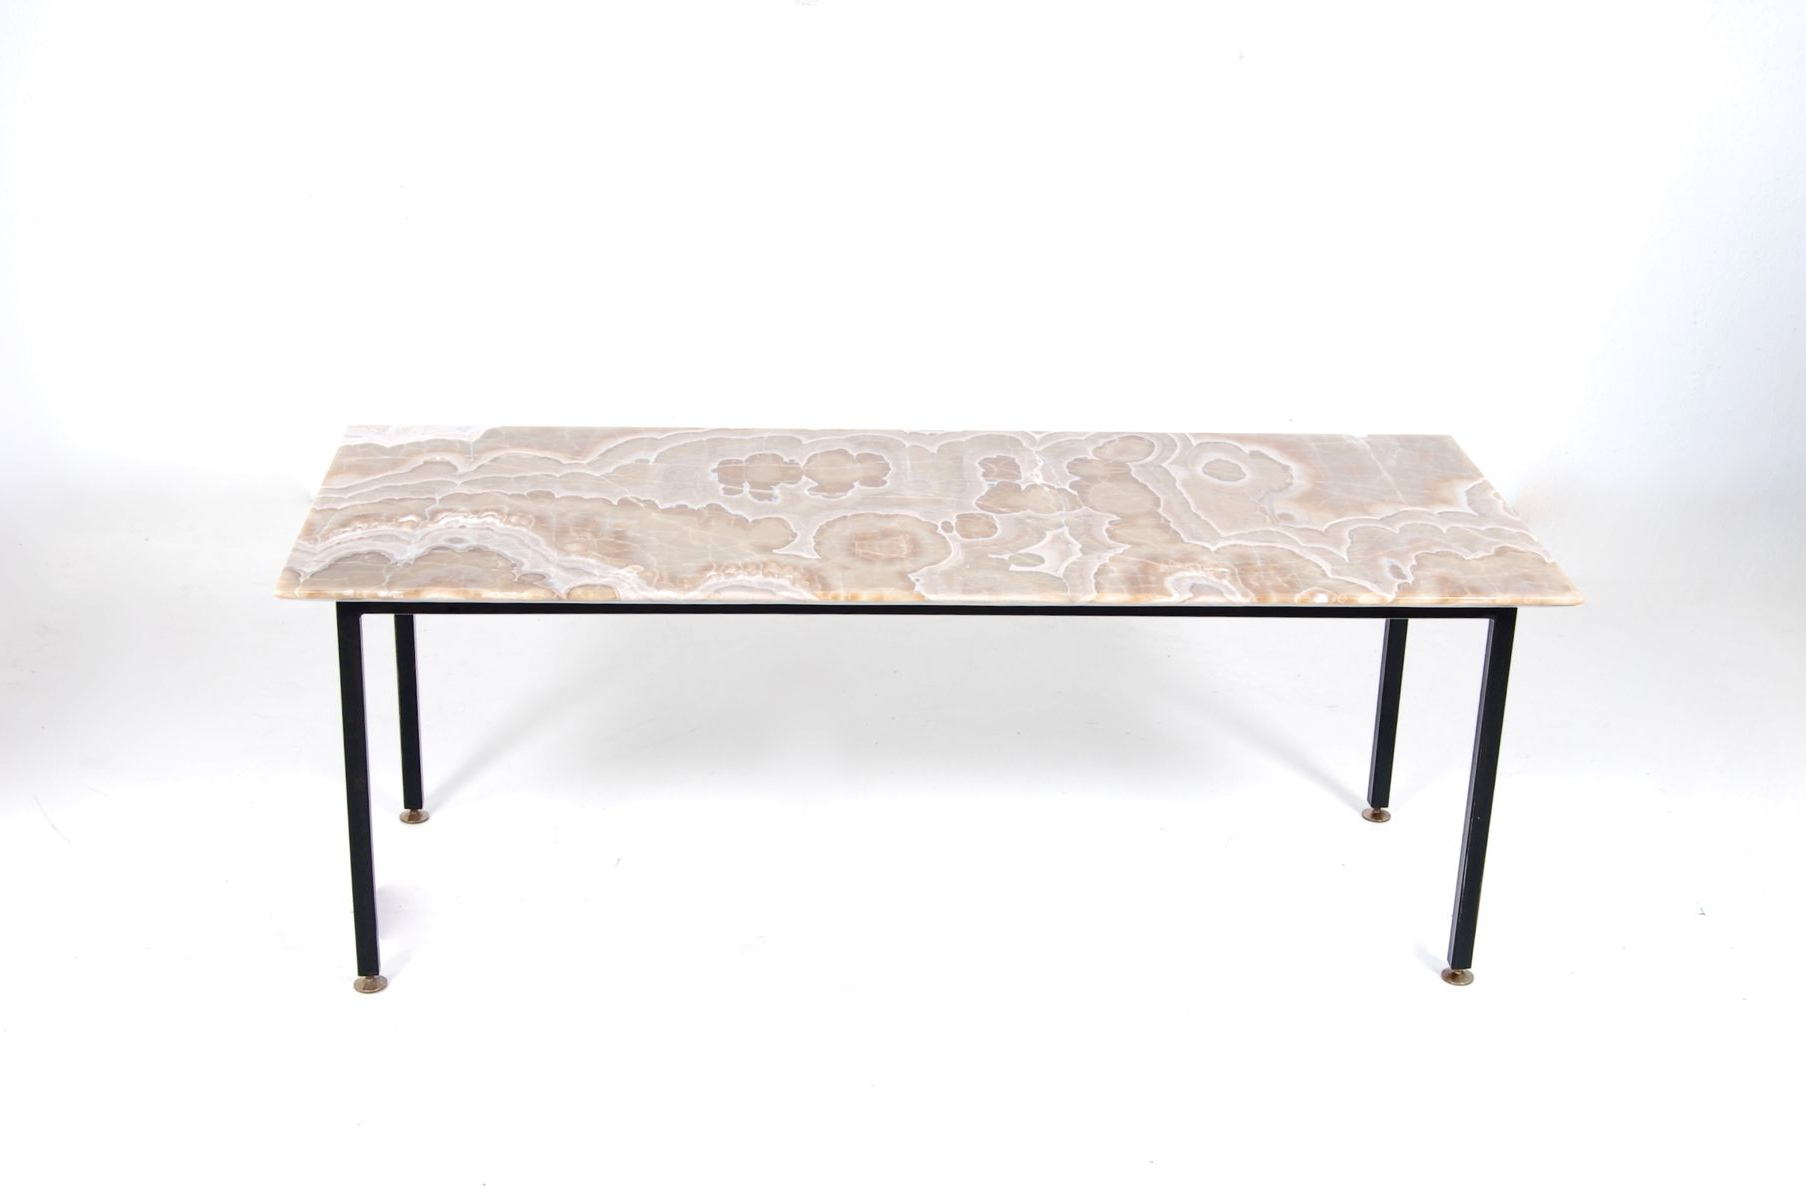 Widely Used Iron Marble Coffee Tables Throughout Mid Century Italian Iron, Brass, & Marble Coffee Table For Sale At (View 18 of 20)